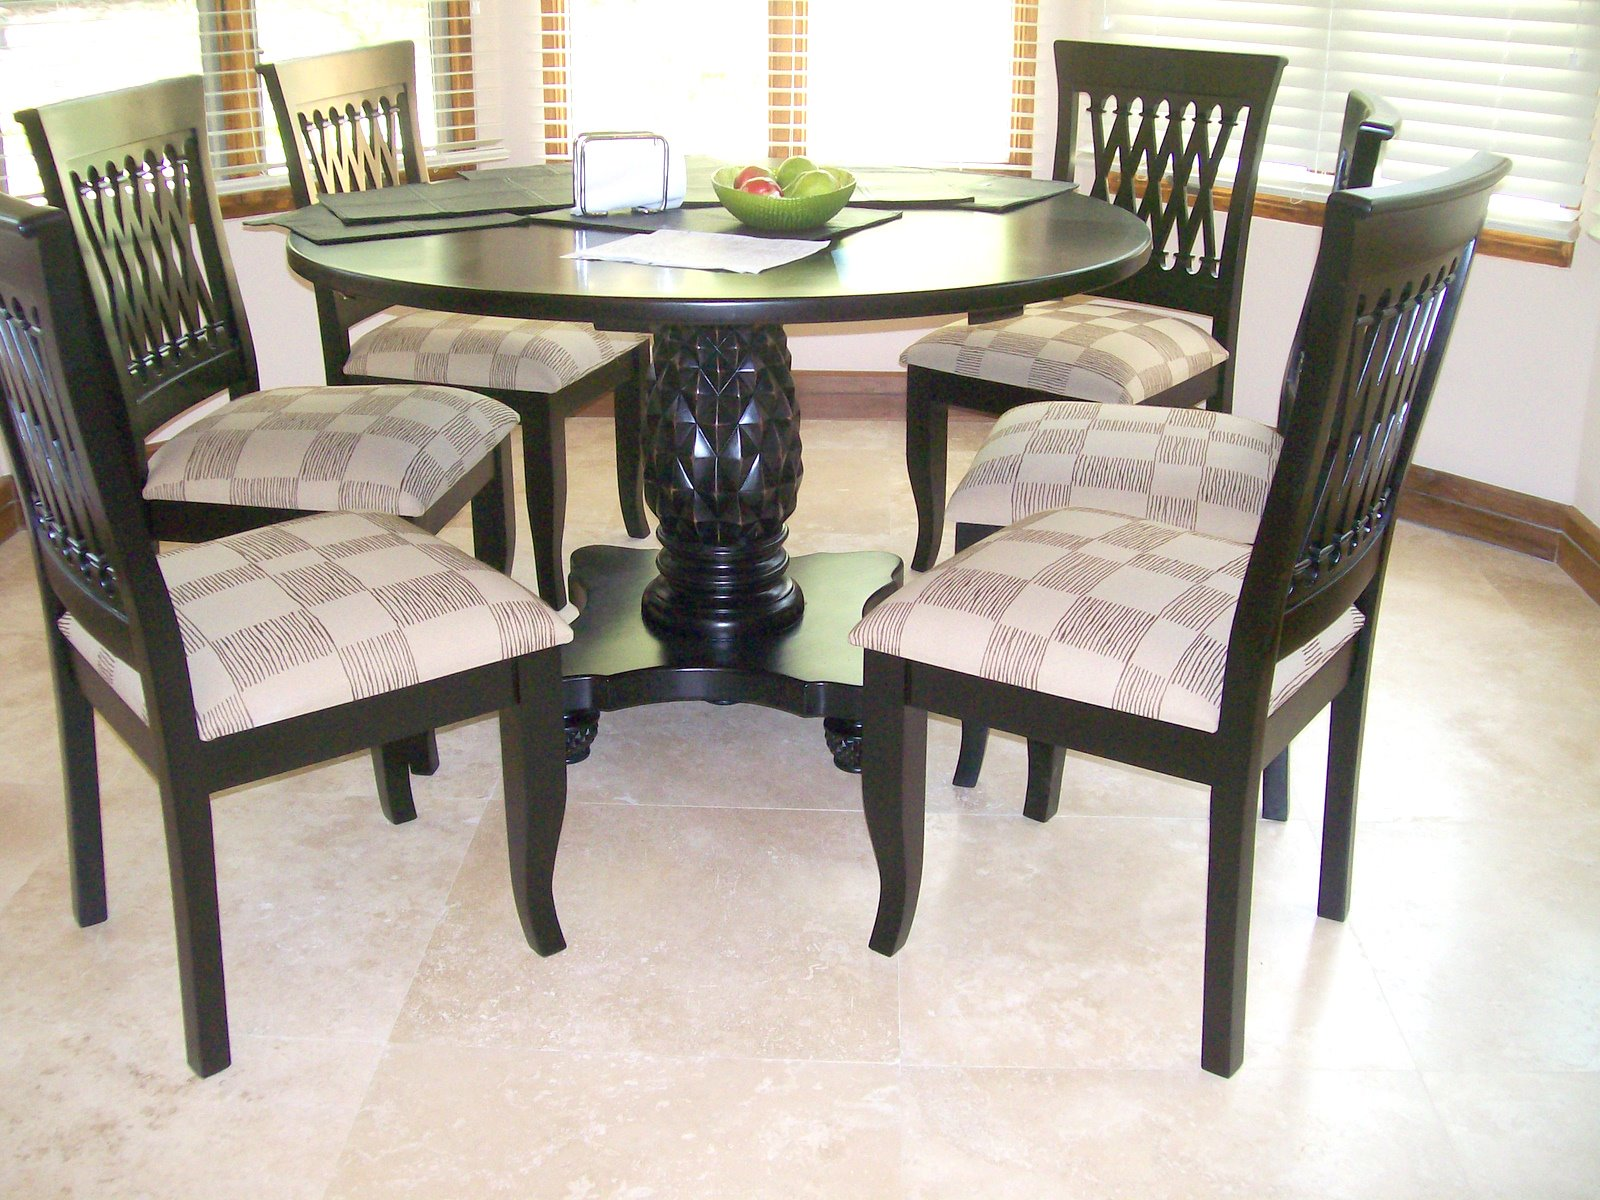 Fine Dining Room Tables And Chairs: Fine Furniture Of Sarchí